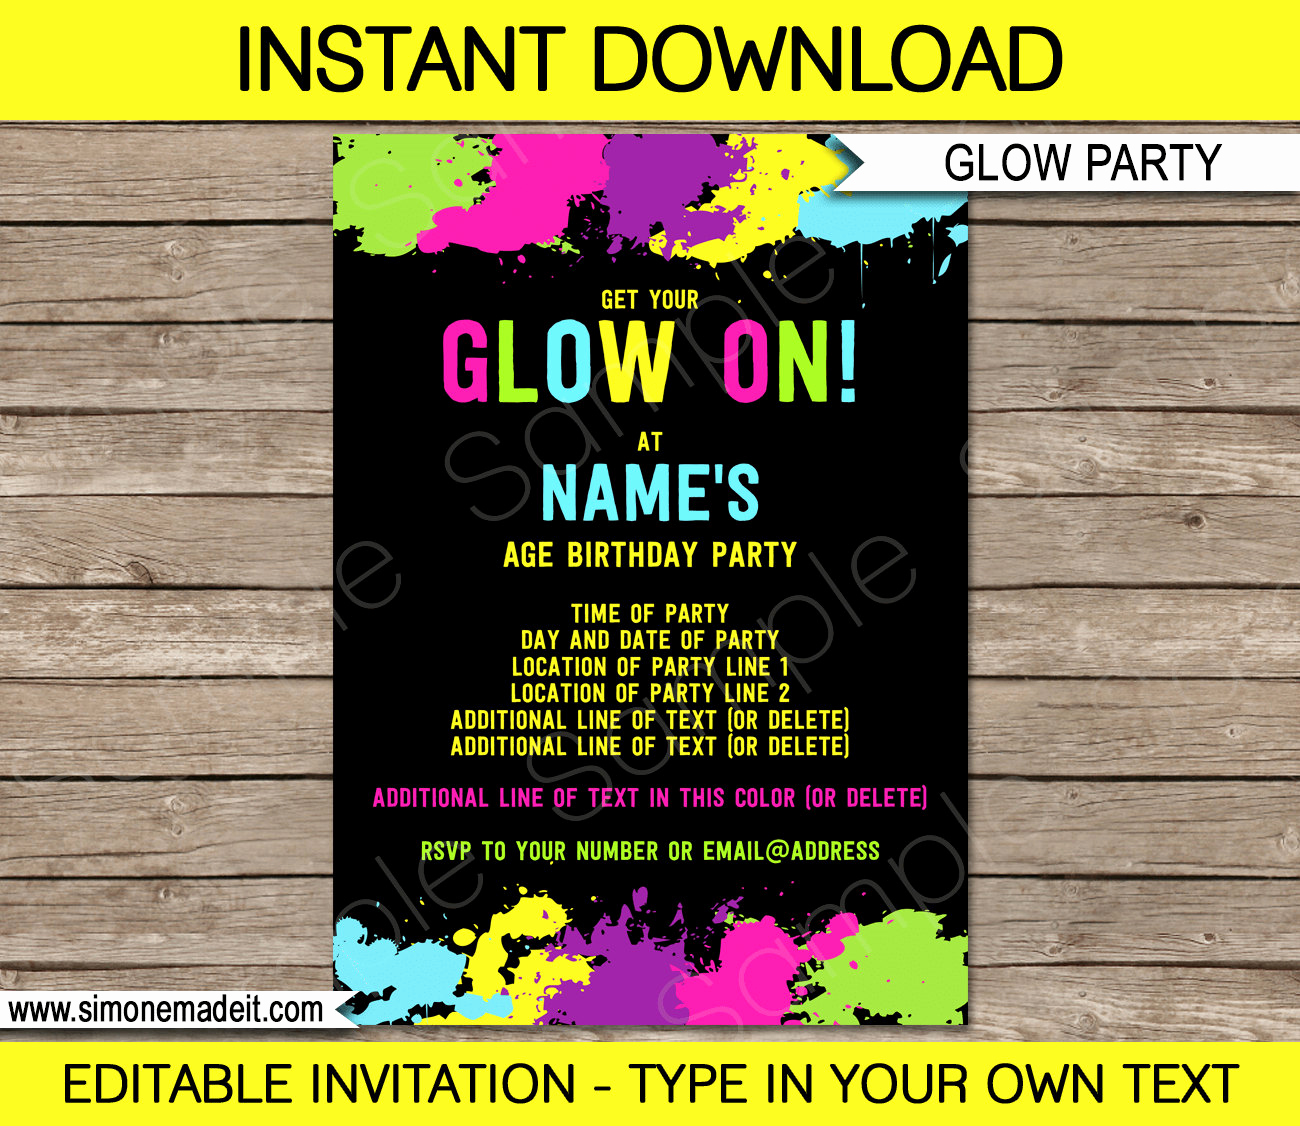 Glow Party Invitation Template Awesome Neon Glow Invitation Template Neon theme Birthday Party